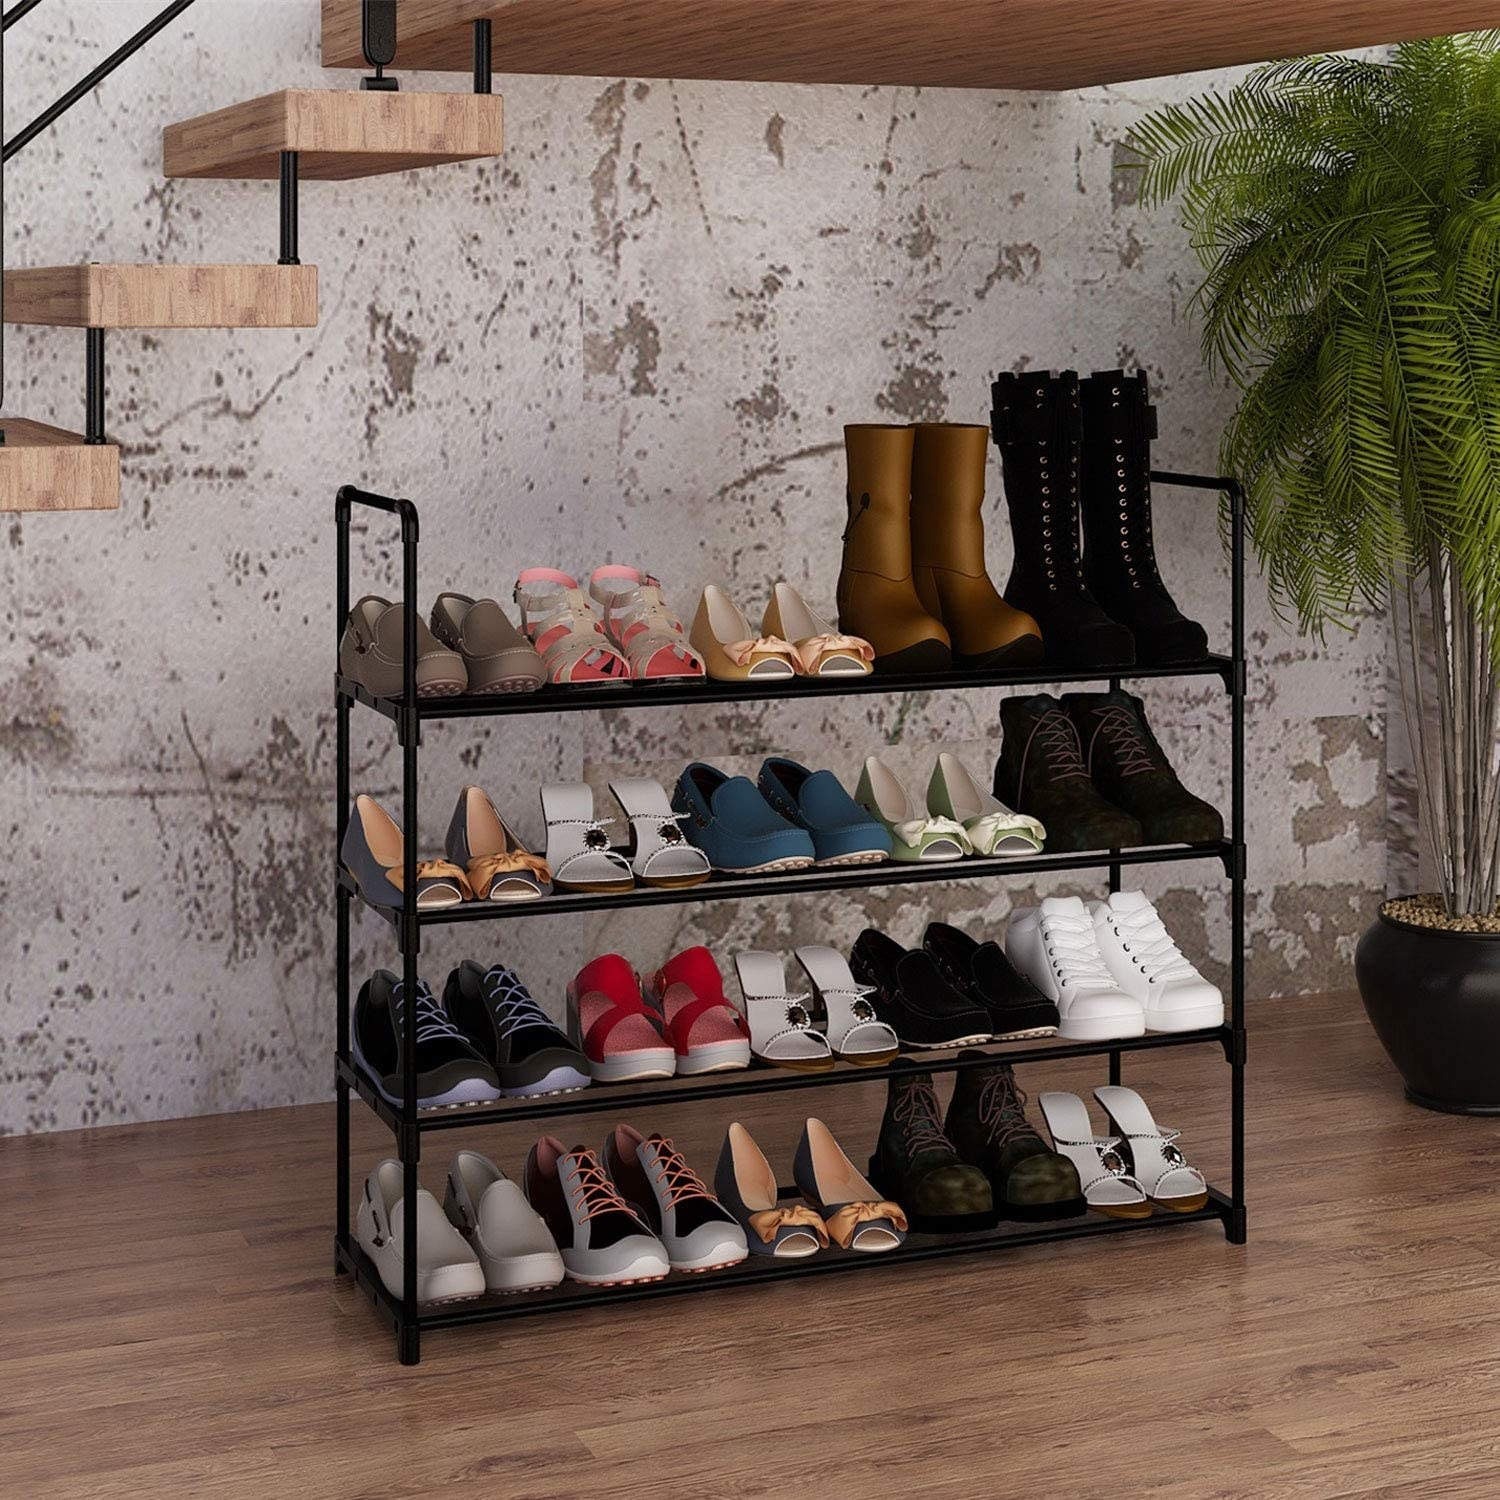 the shoe rack with shoes in it